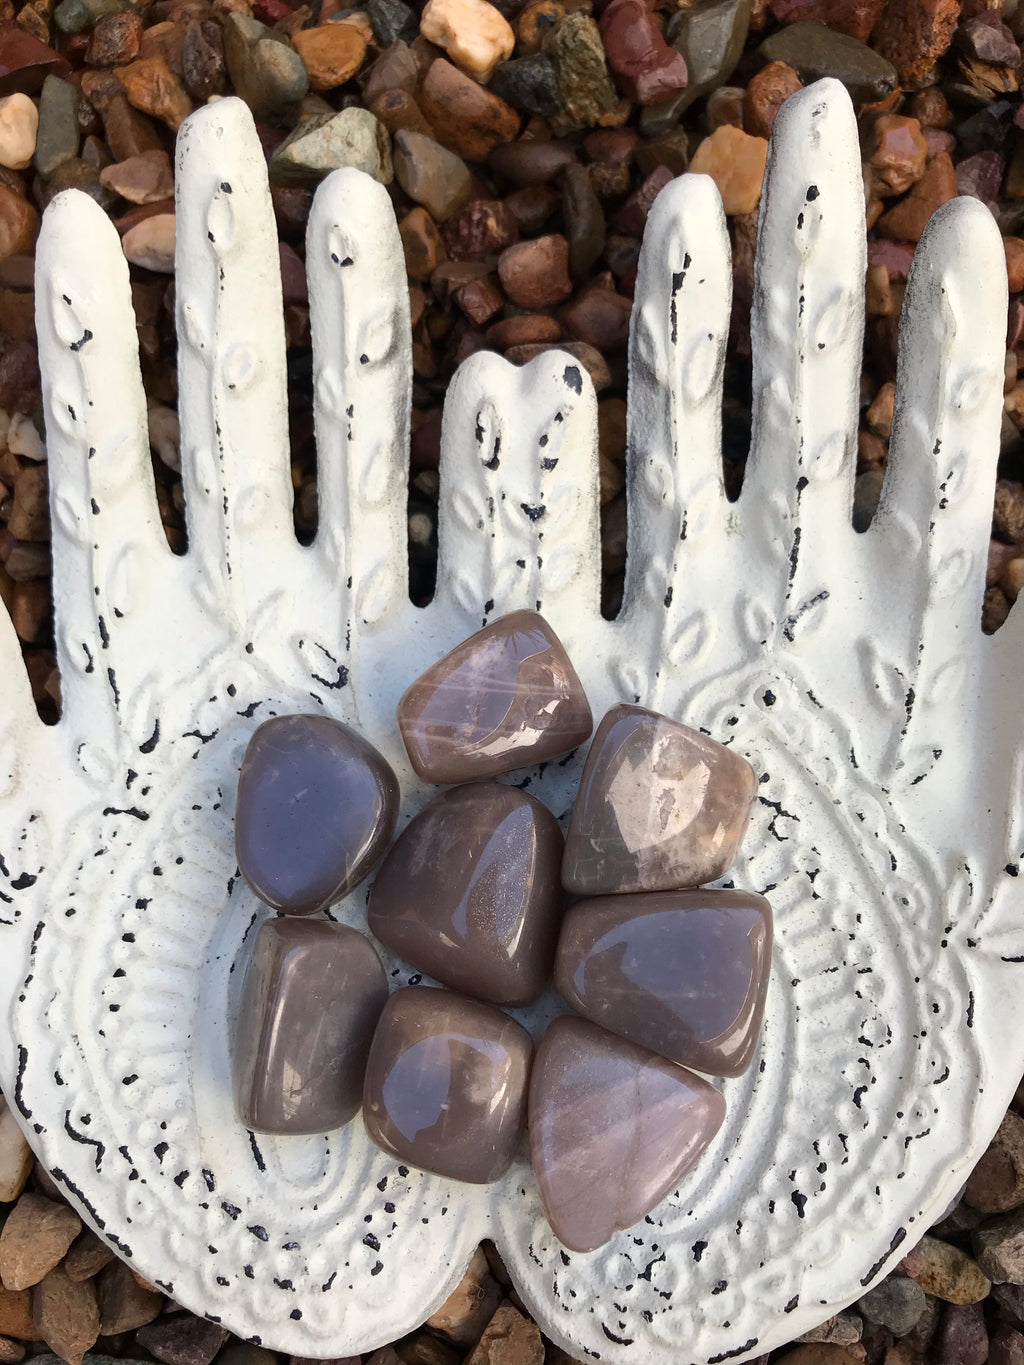 Peach Moonstone Tumble Stones